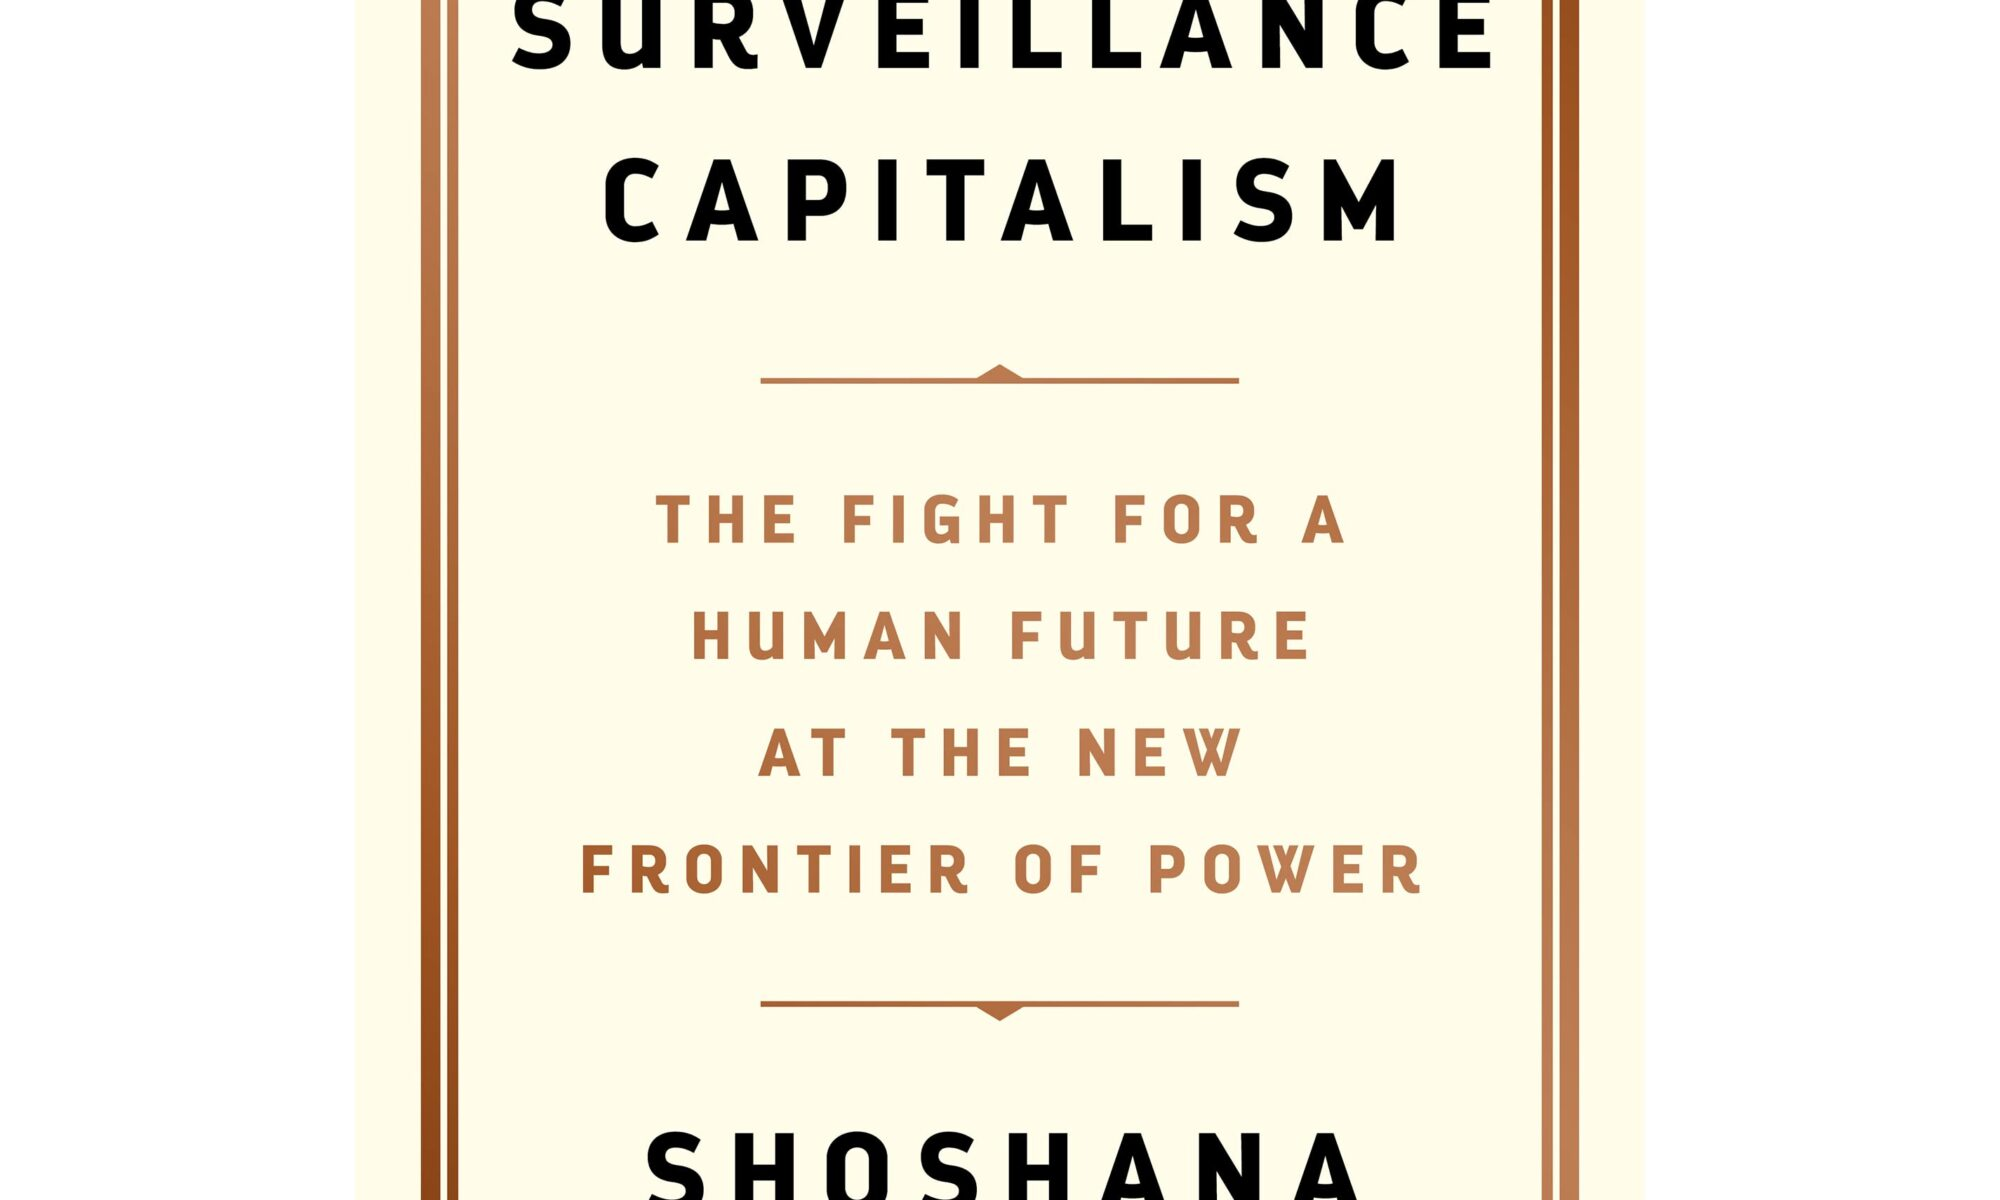 big-brother-surveillance-capitalism